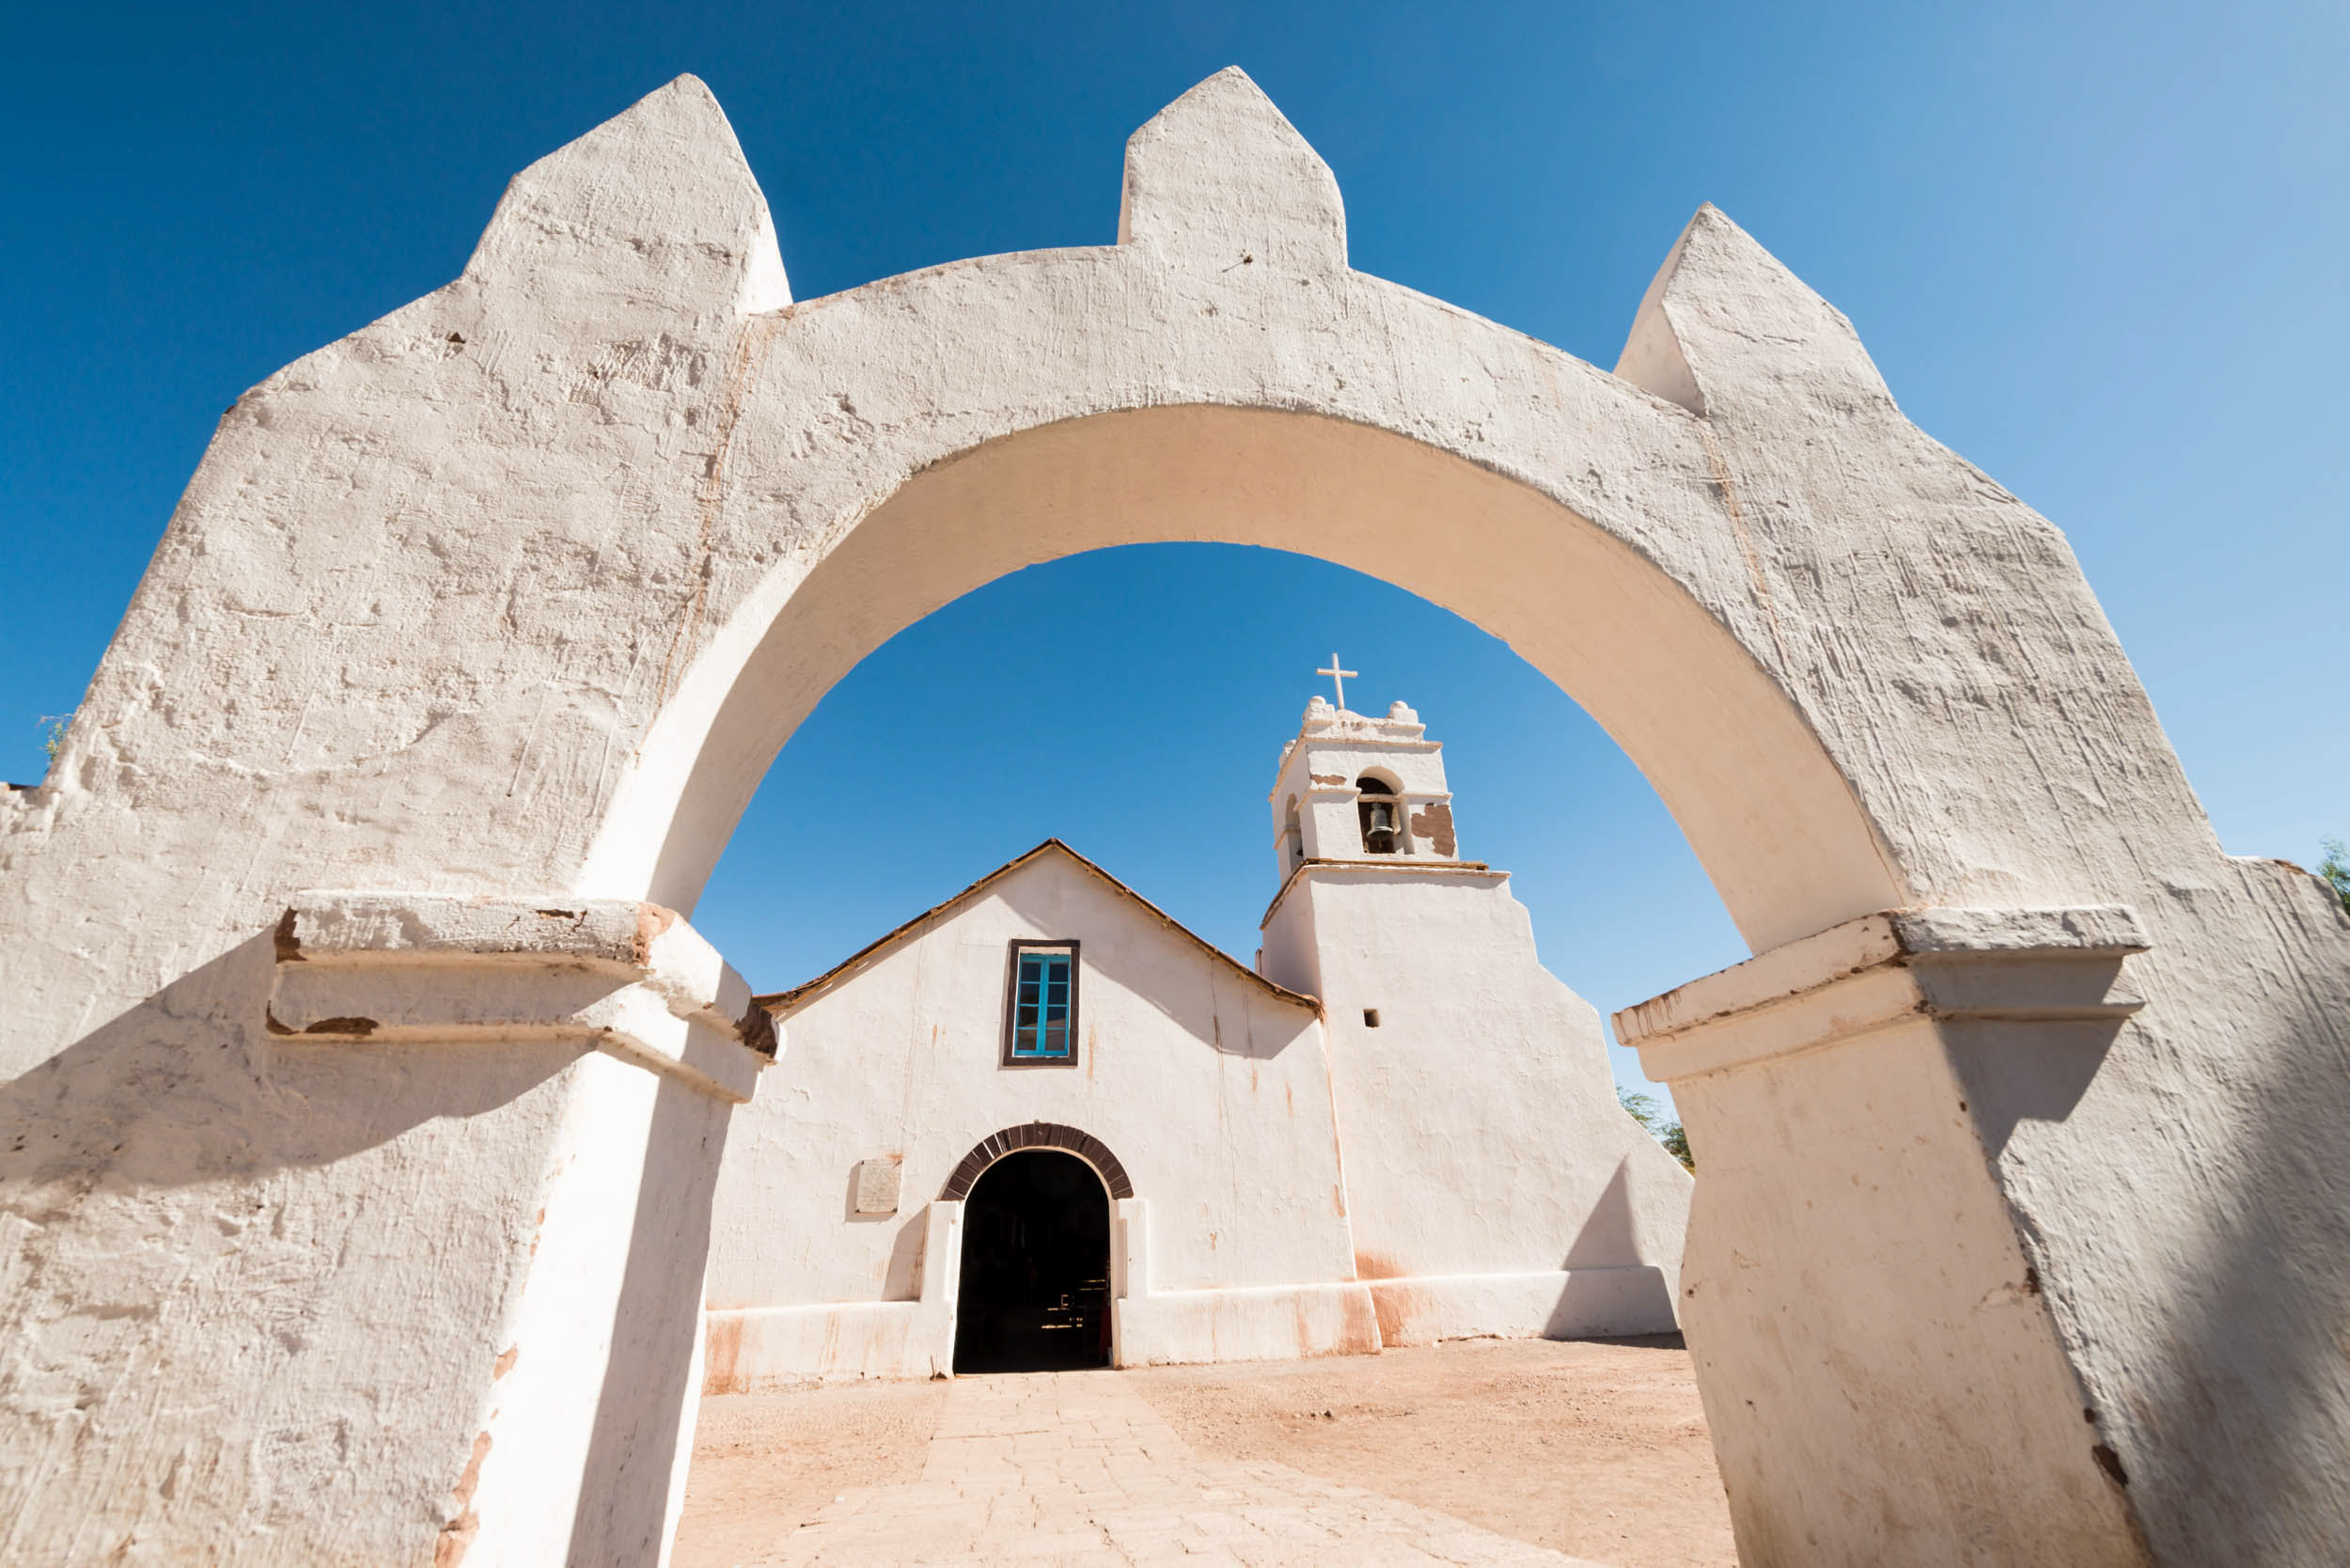 iglesia-church-san-pedro-atacama-chile-architecture